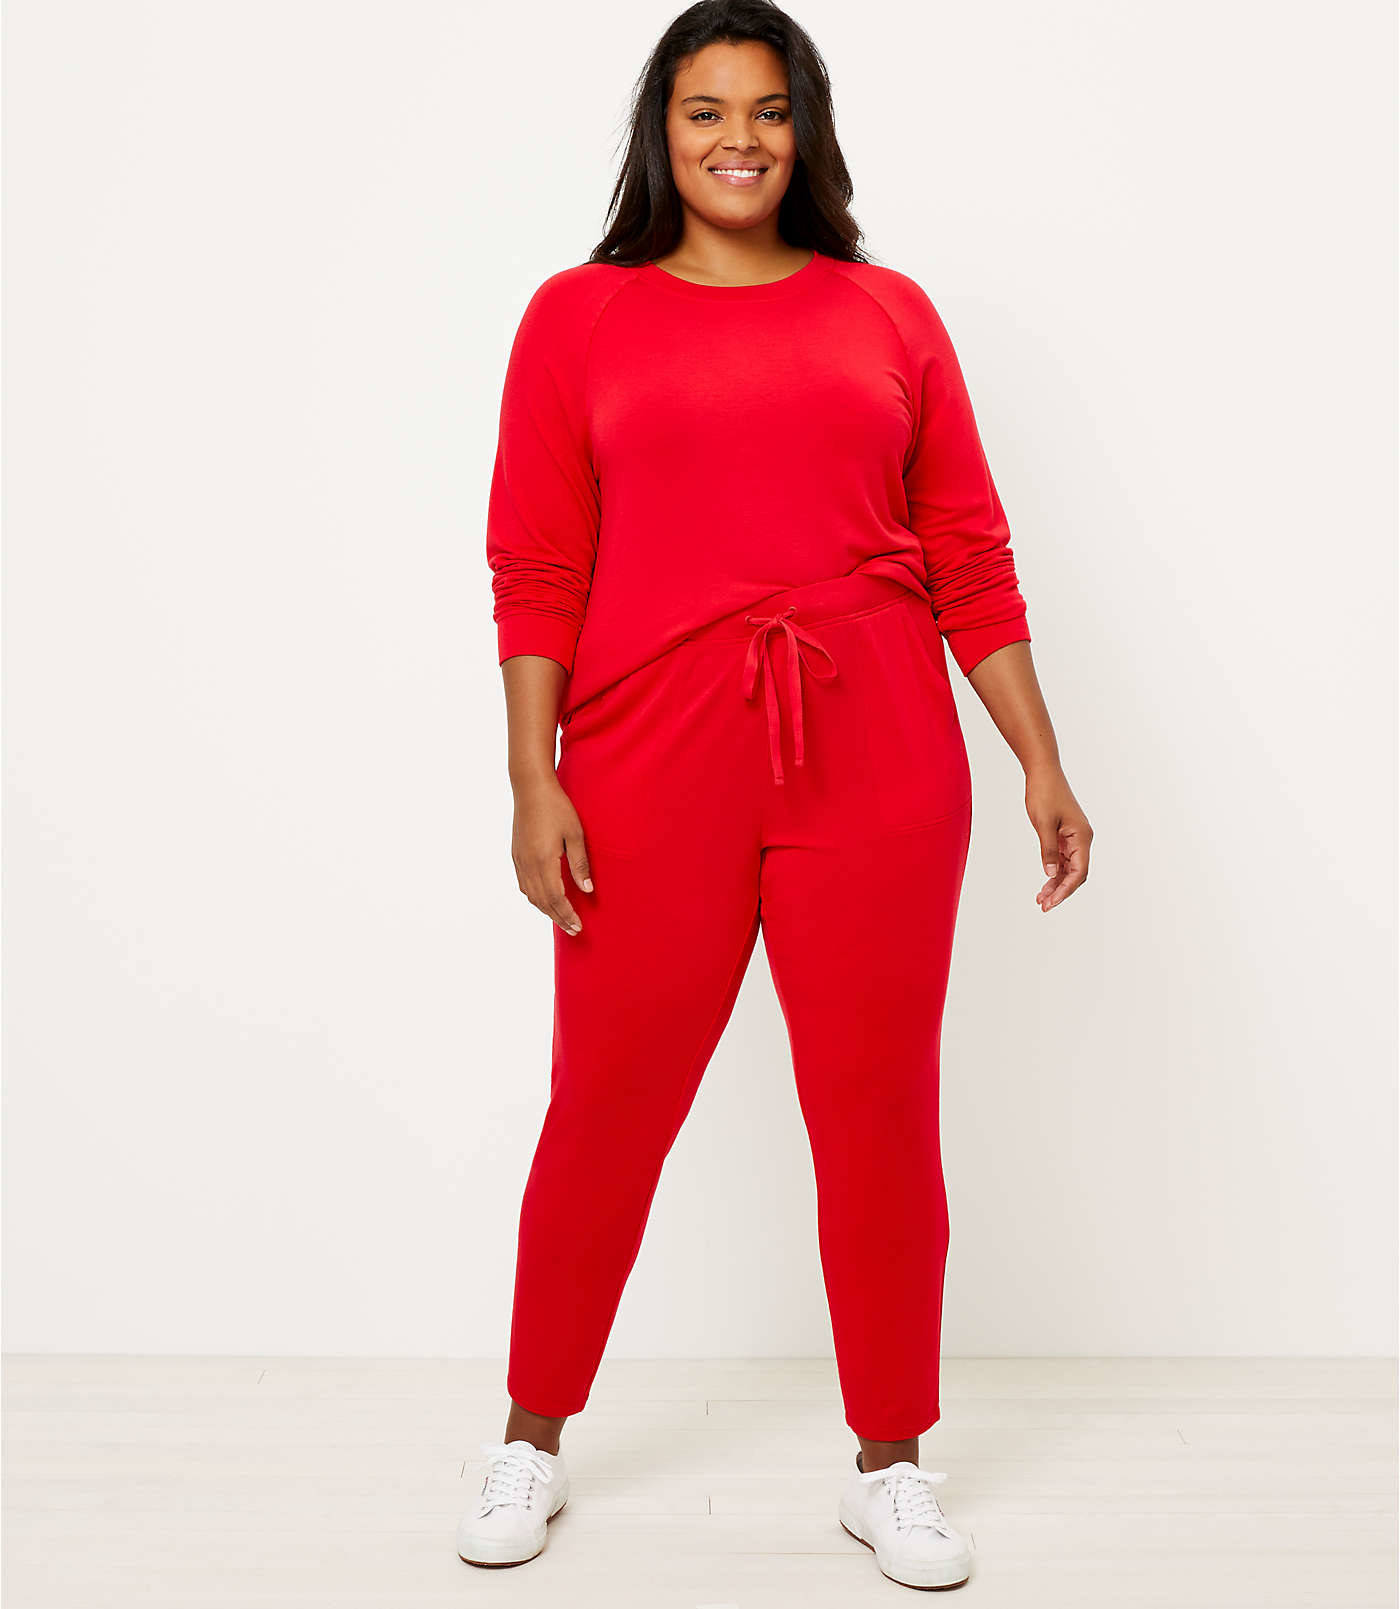 A model in the red sweatsuit